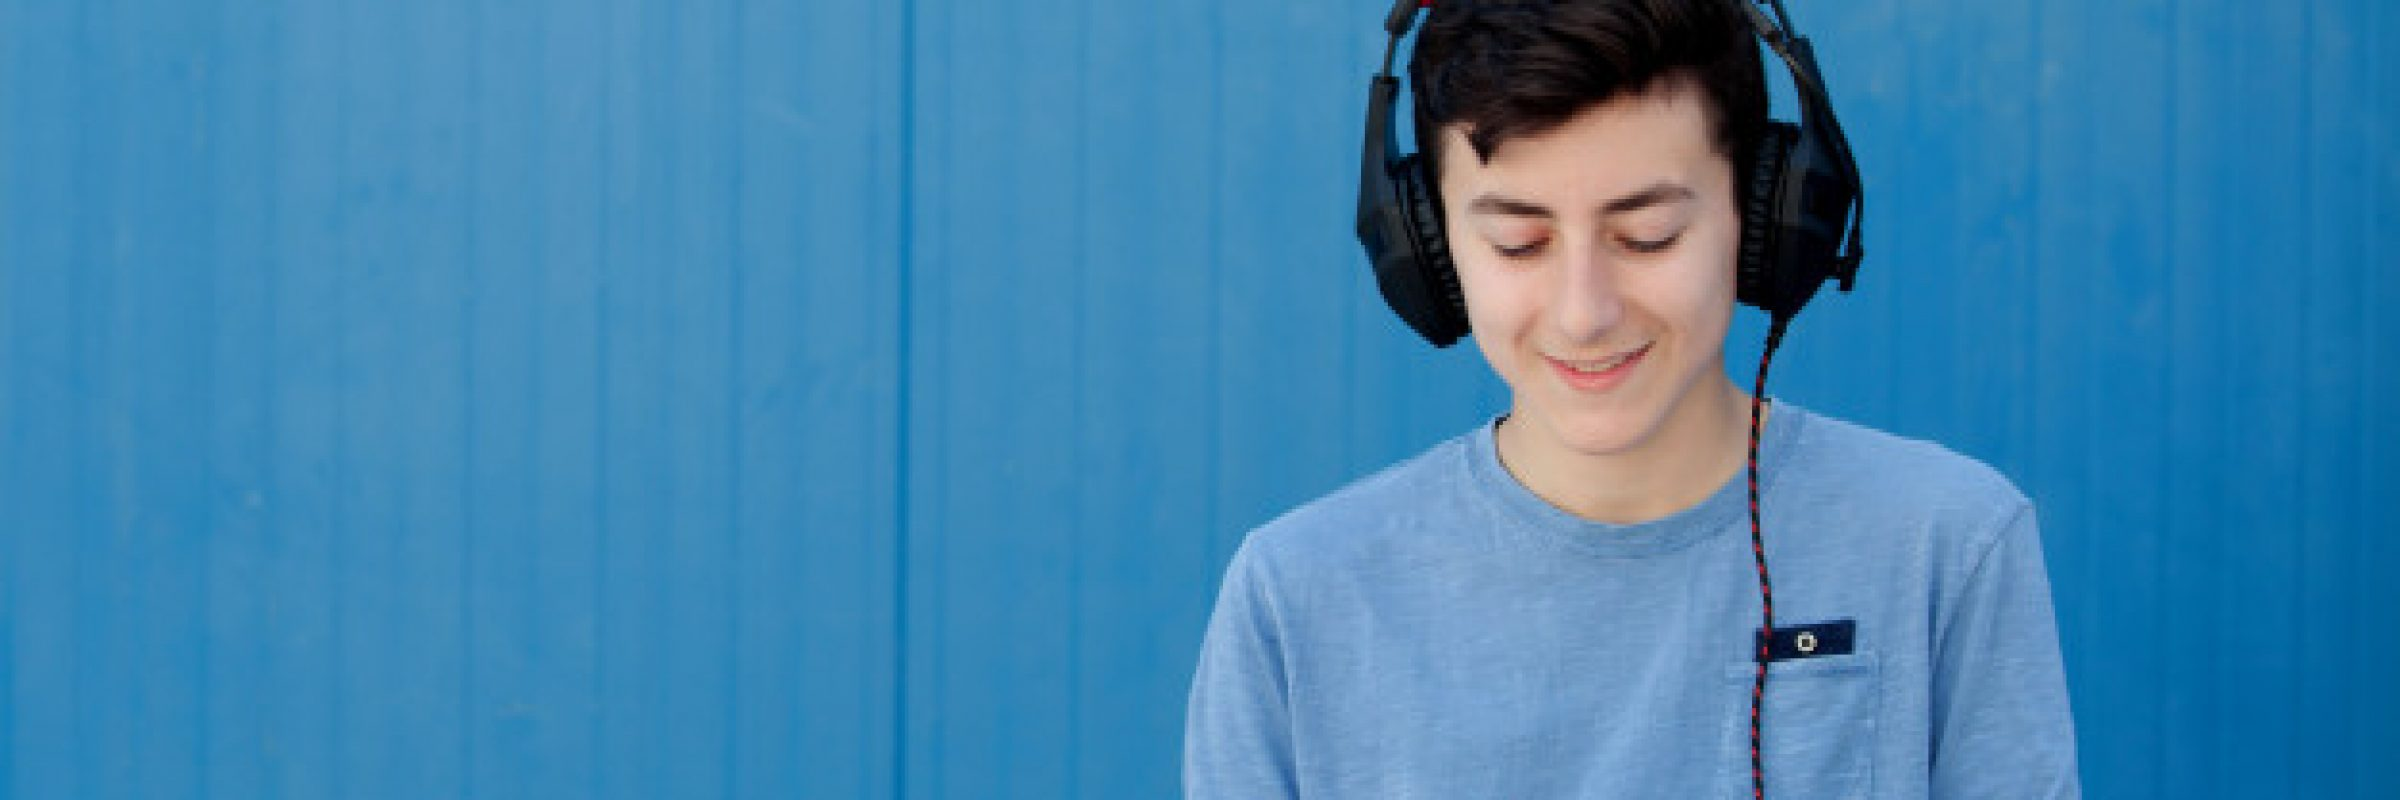 teen-listening-music-with-headphones_58409-6419